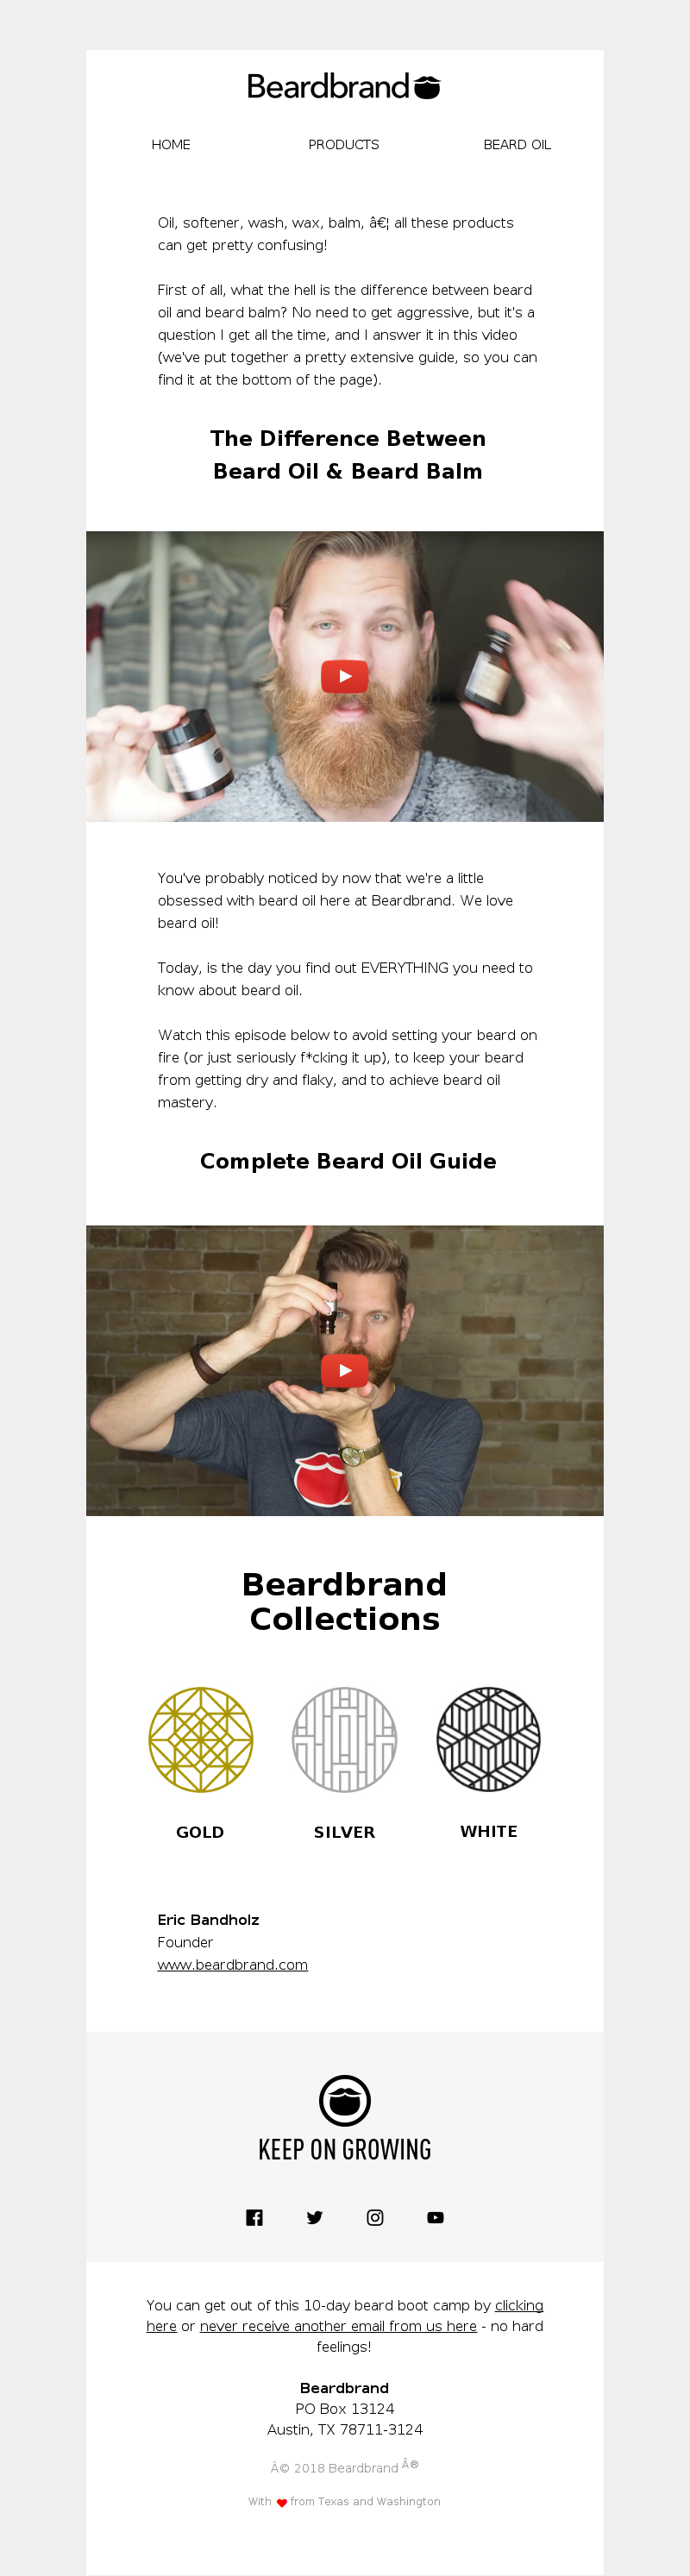 Should you get your beard oil by the gallon? Beardbrand Home Products Beard